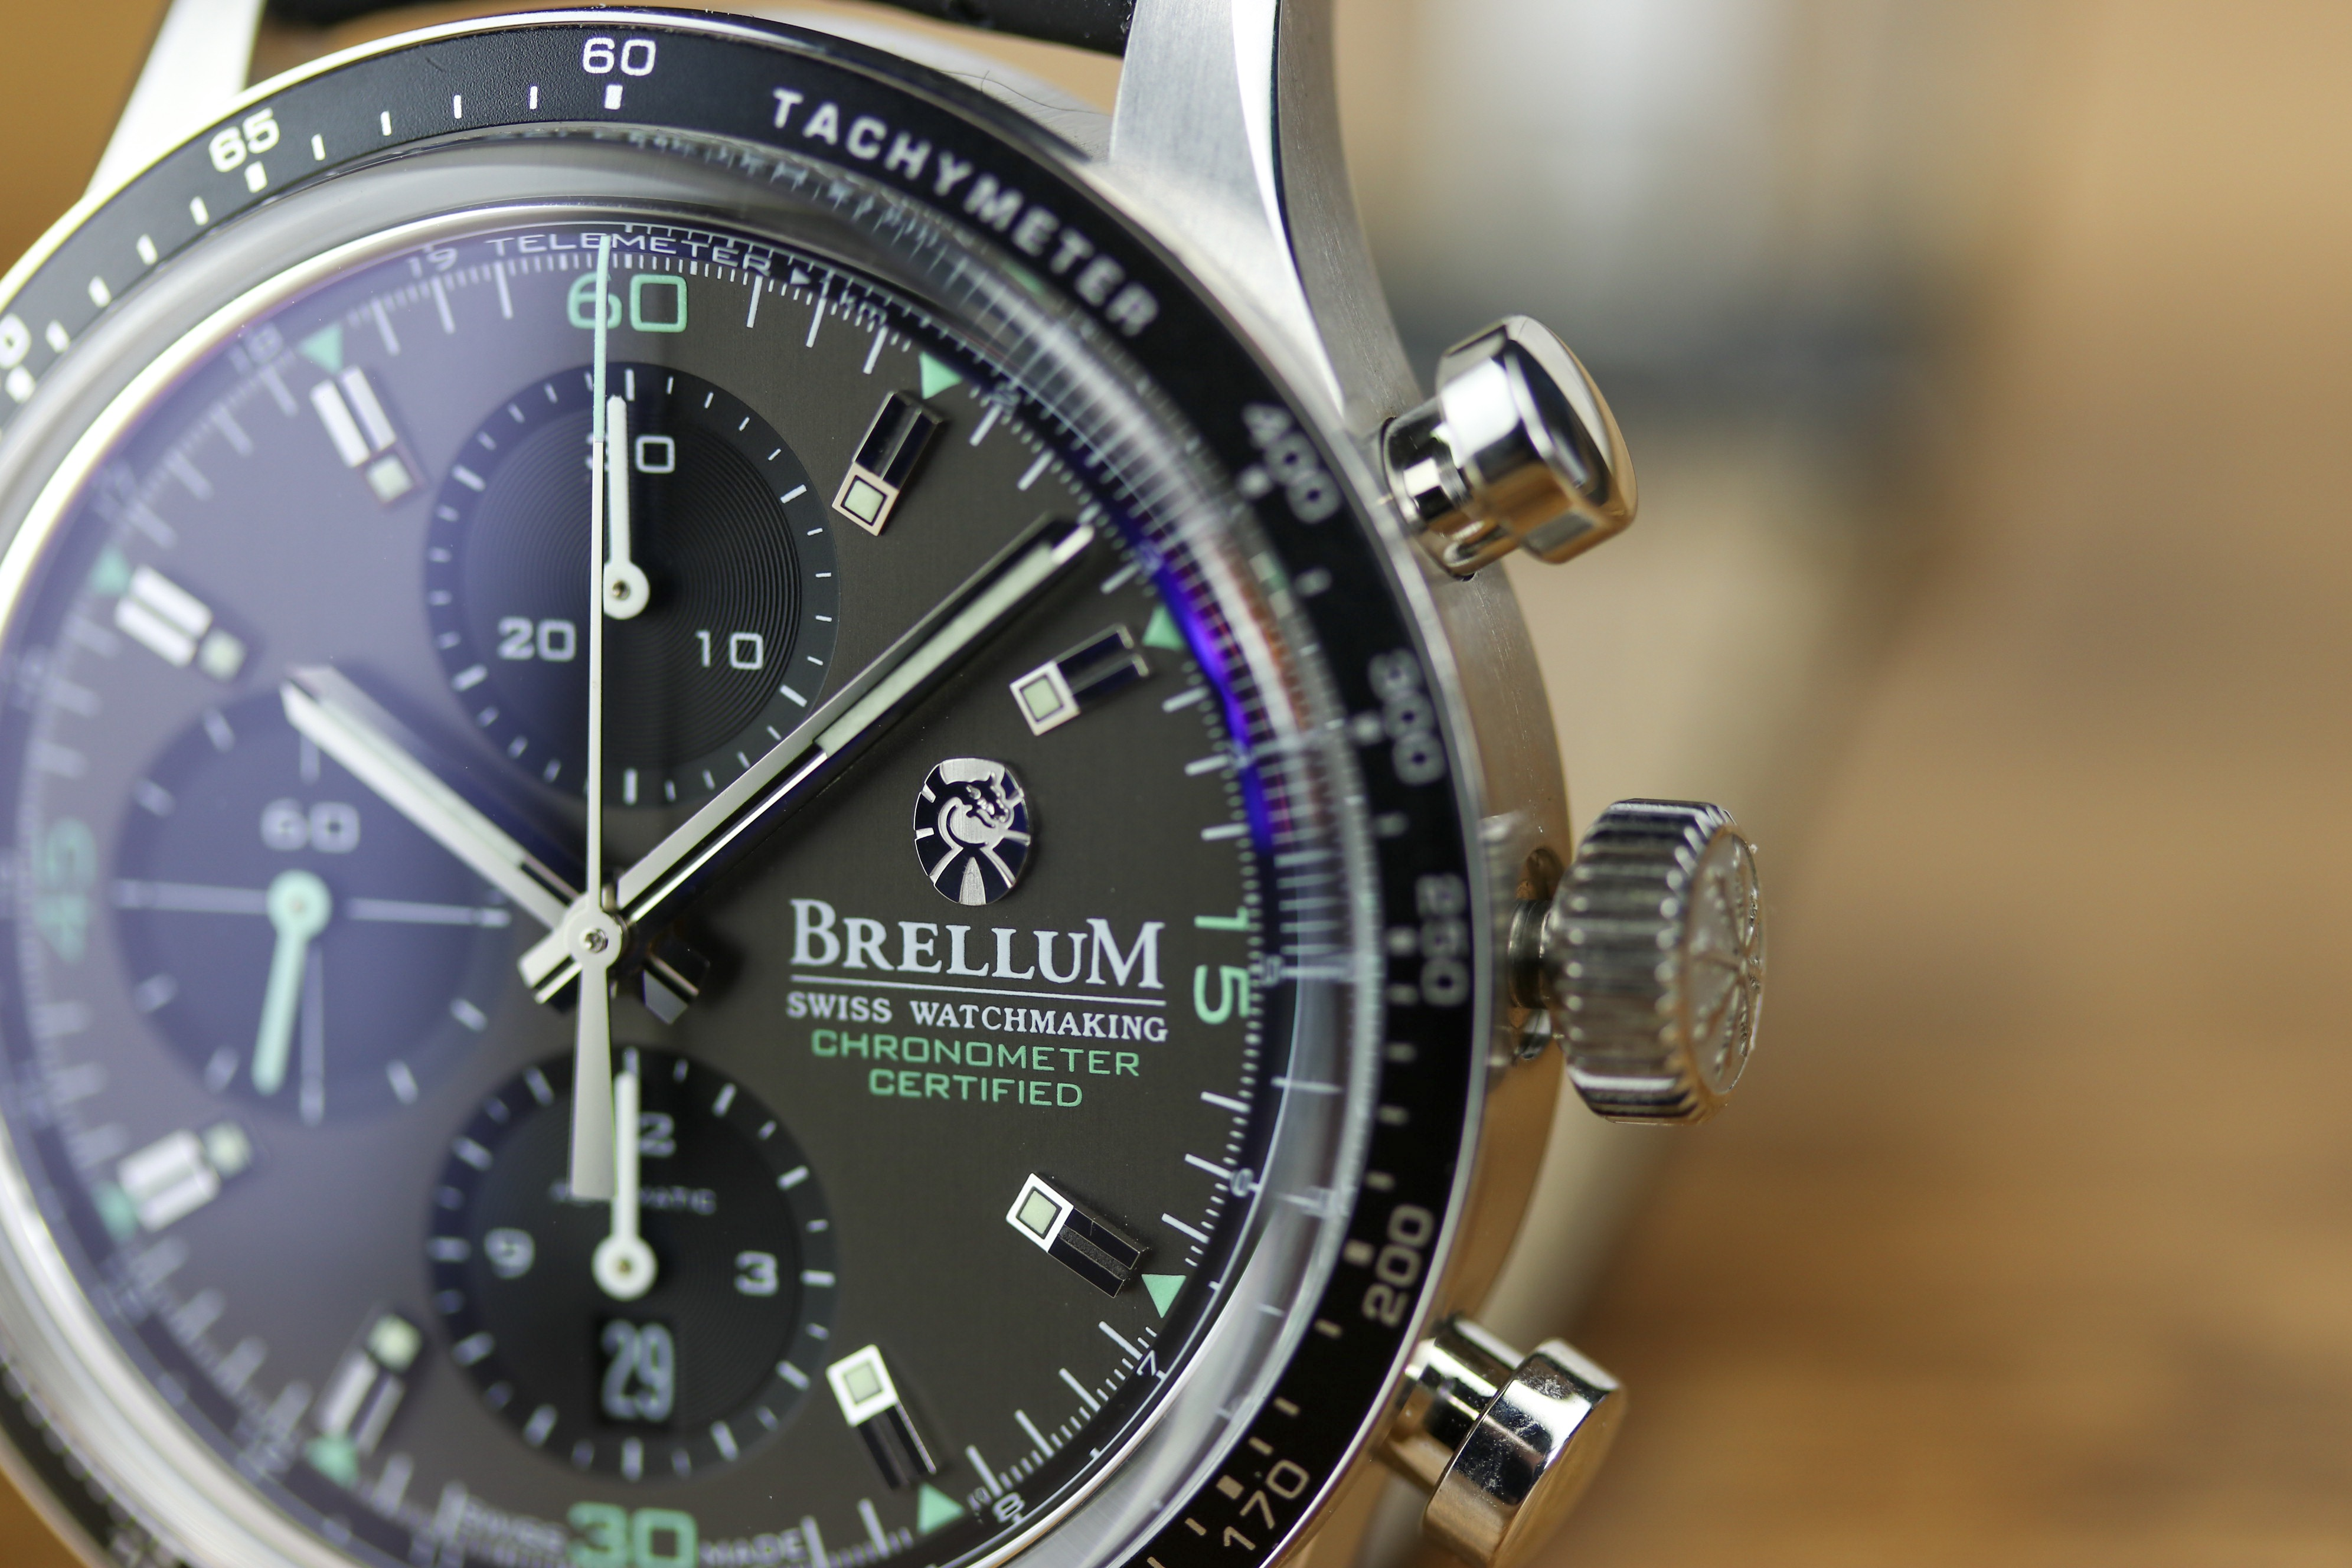 Brellum Swiss Watchmaking Pandial